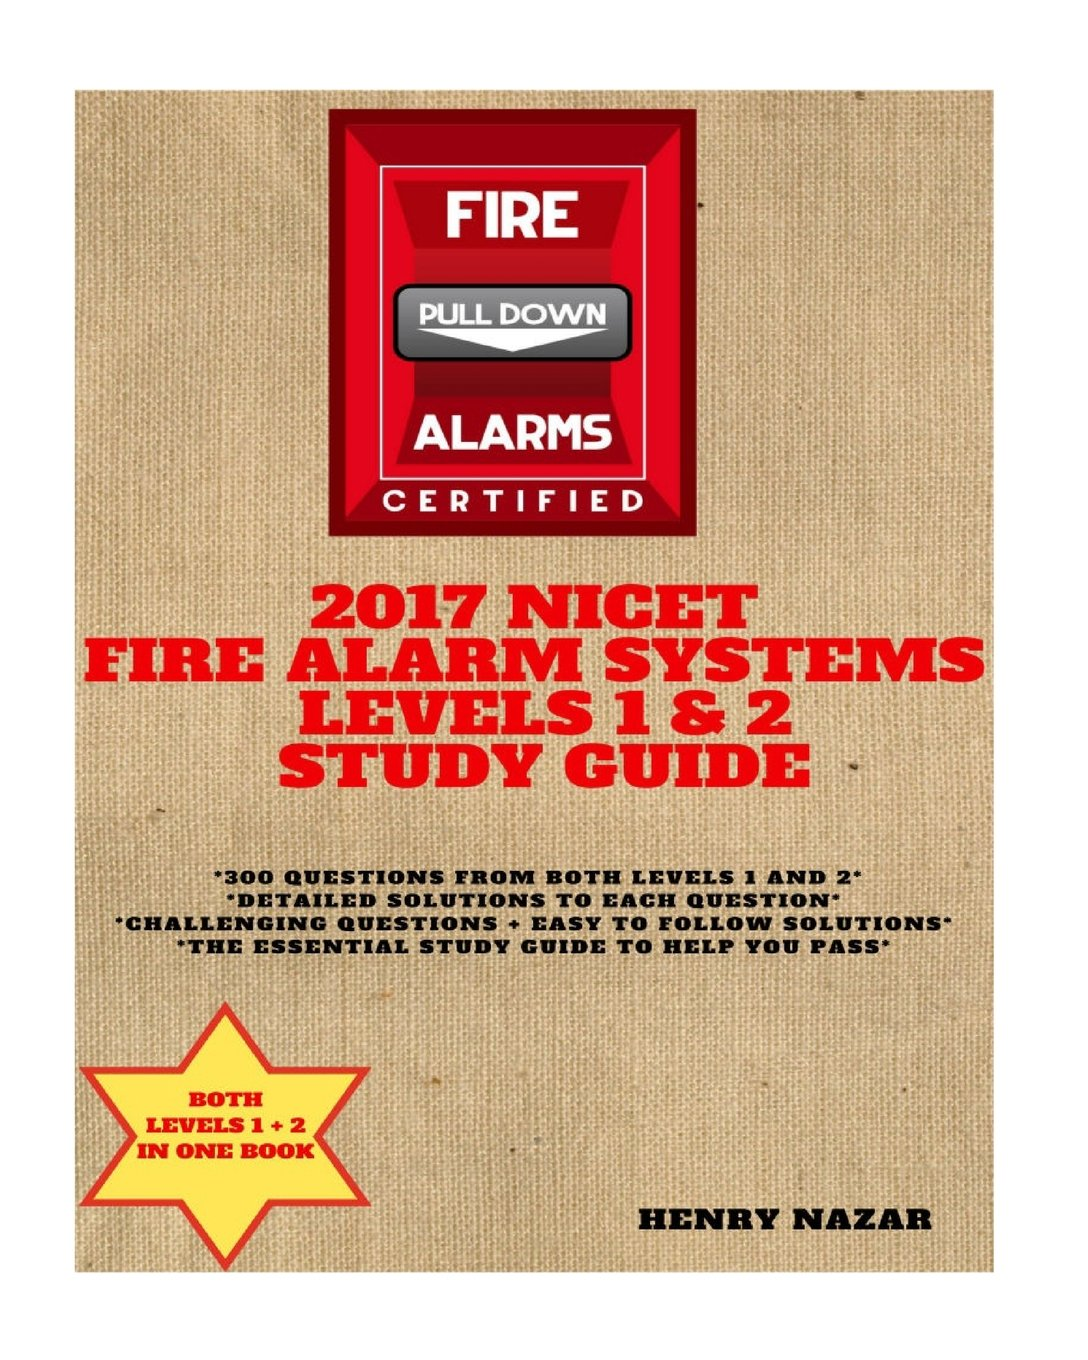 NICET Fire Alarm Systems Levels 1 & 2 Study Guide: Henry Nazar:  9781976549984: Amazon.com: Books